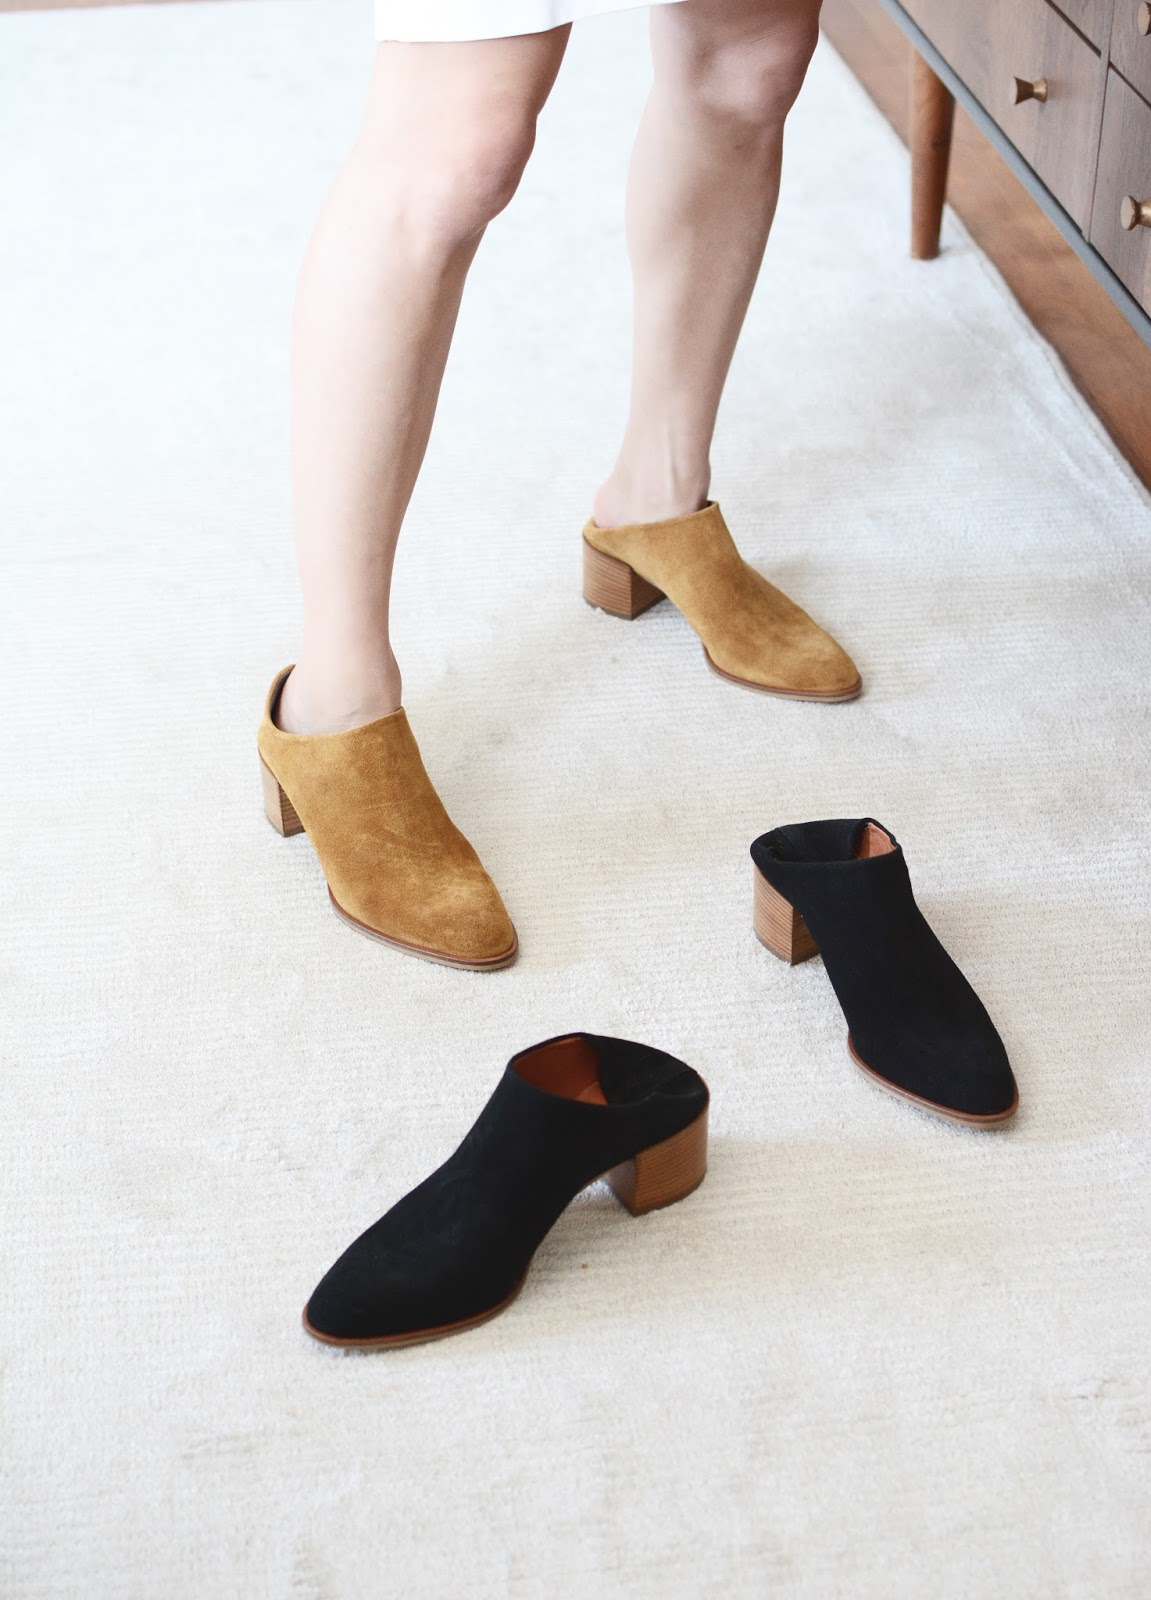 Everlane Suede Heel Mule Black Mustard Taupe Review Photos Comparison Heel Boot